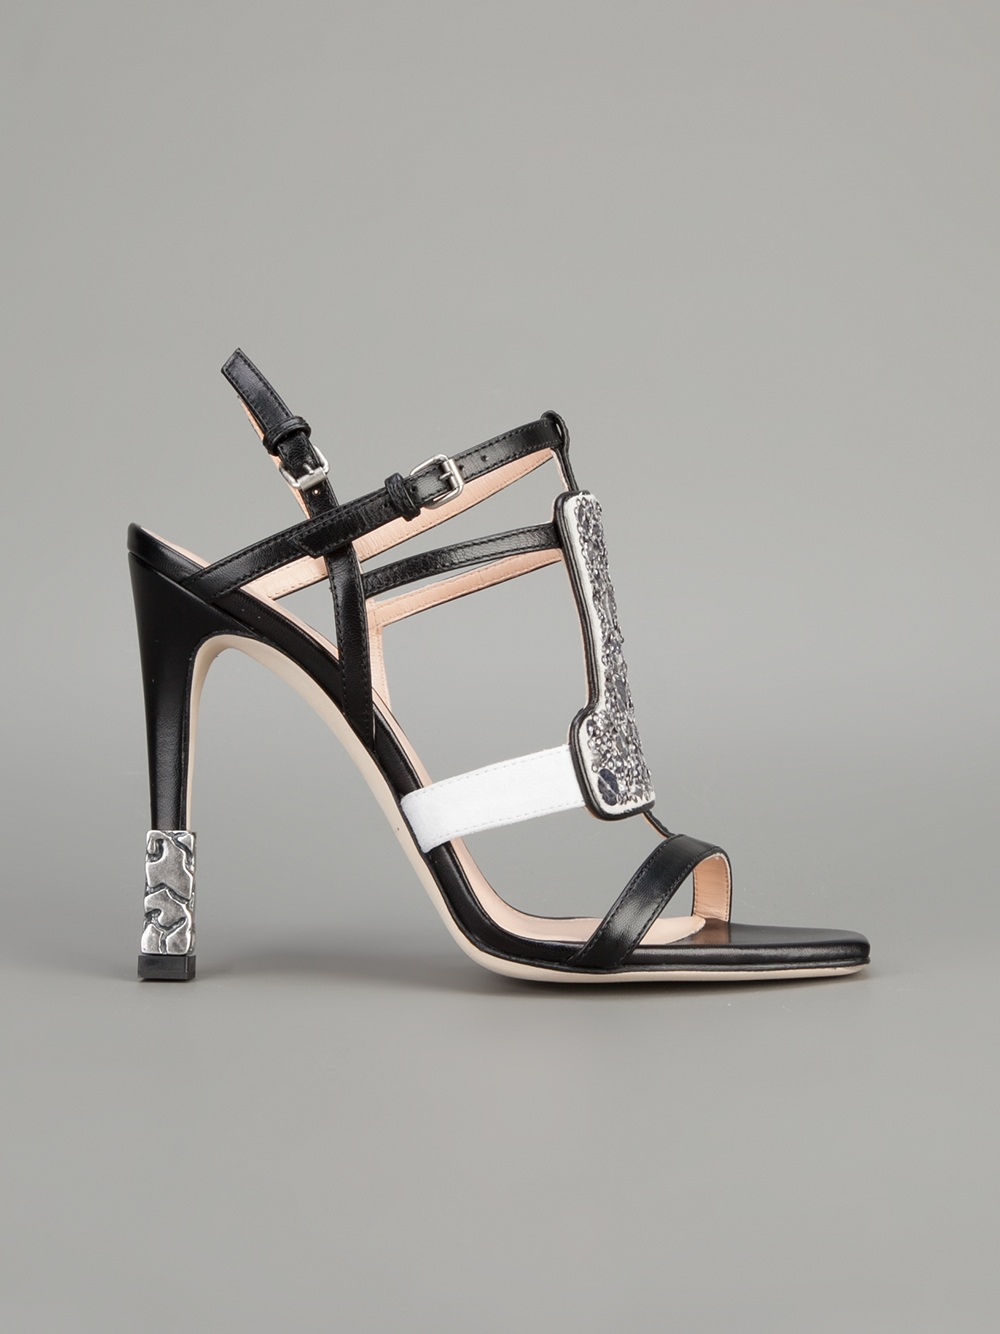 CALVIN KLEIN COLLECTION Sandals